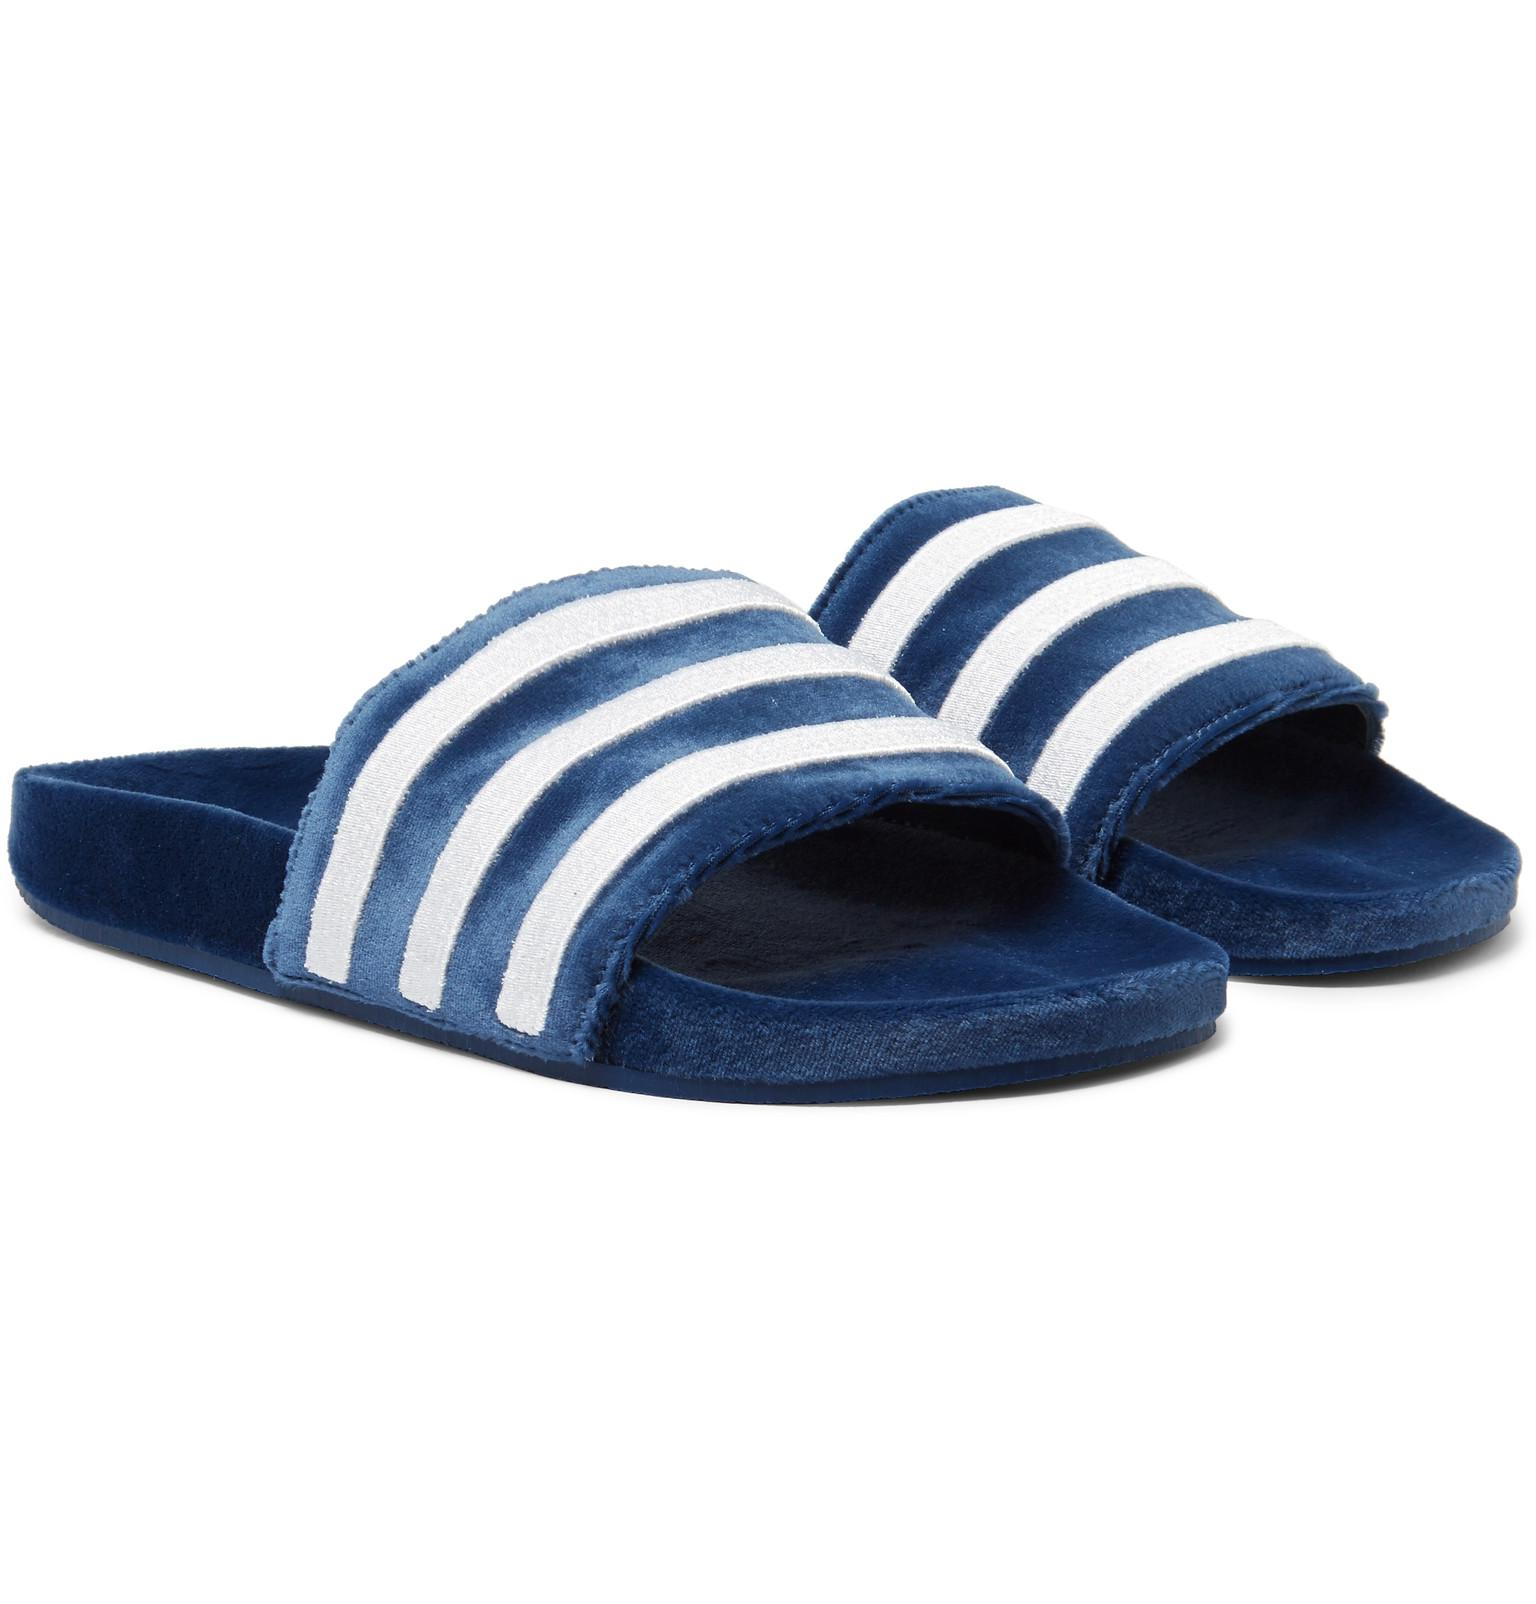 96f1050084b94 Lyst - adidas Originals Adilette Striped Velvet Slides in Blue for Men